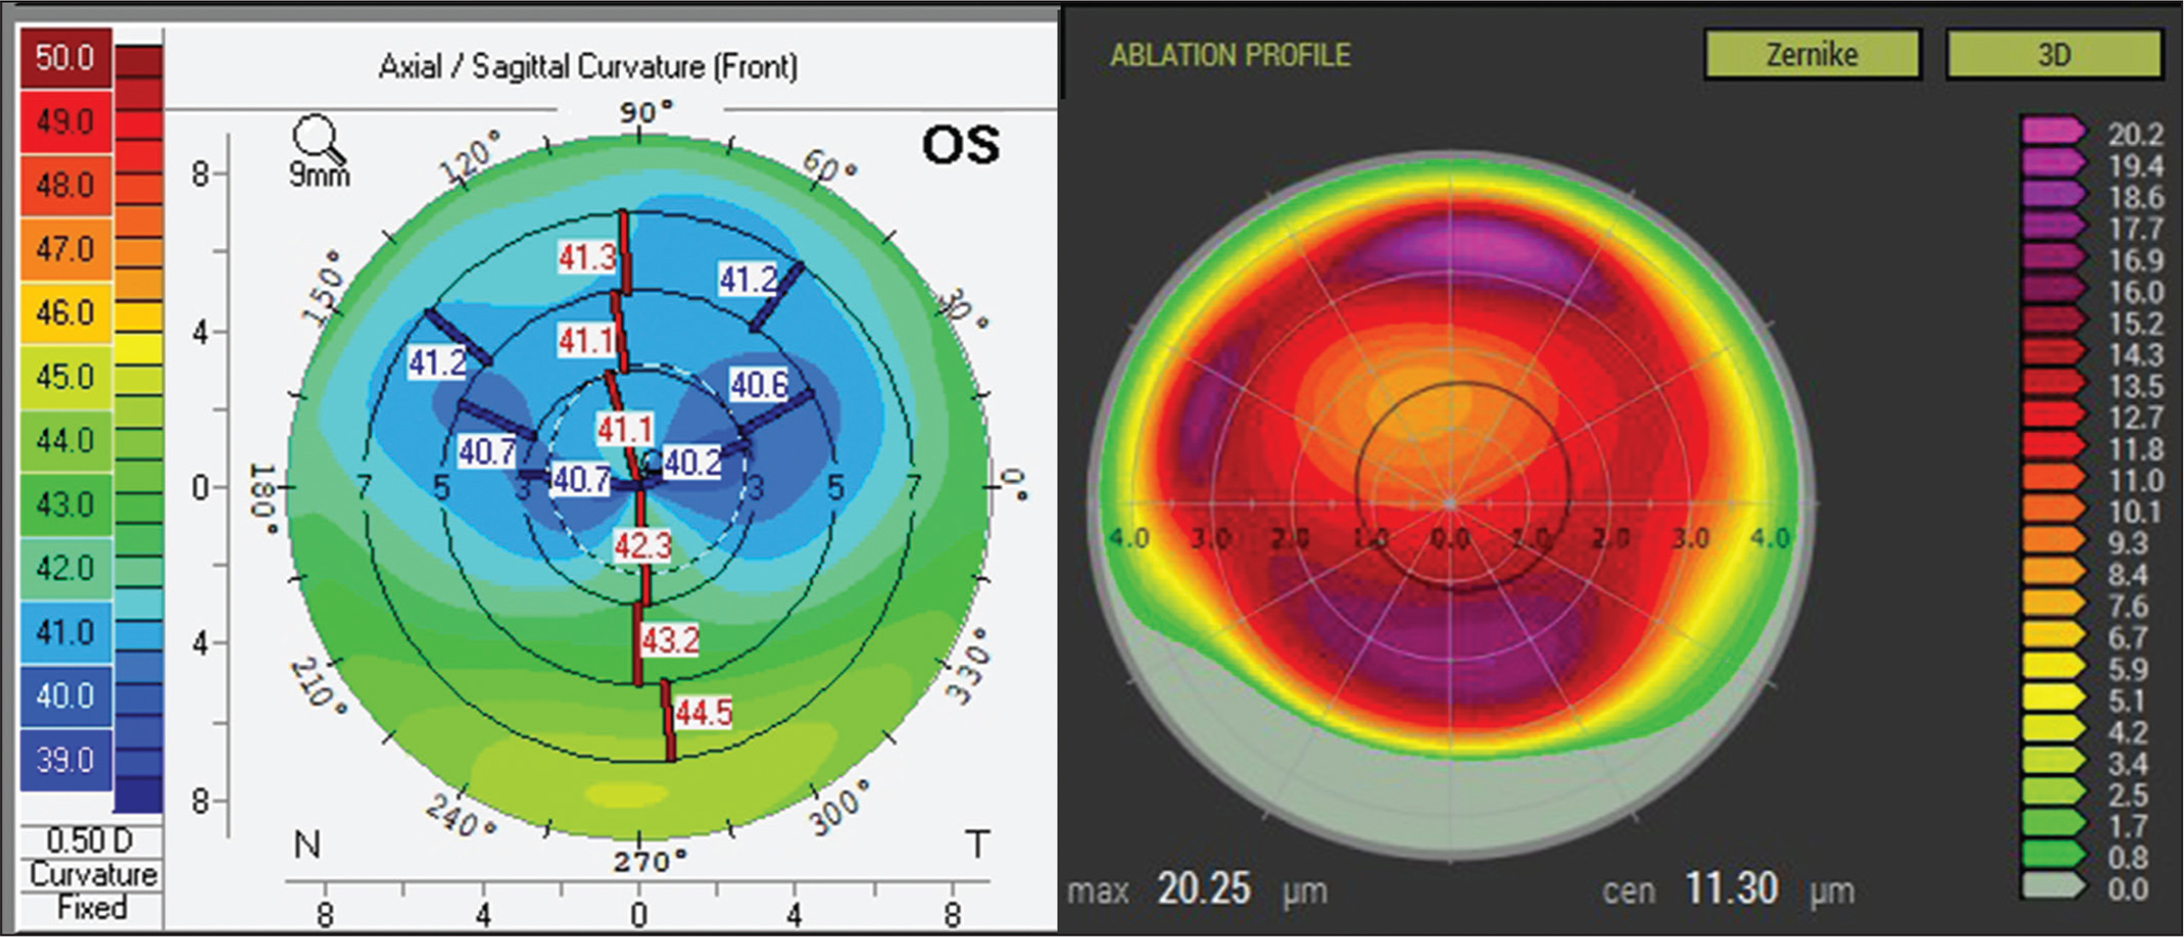 Composite image showing Scheimpflug anterior curvature map (left) and the planned topography-guided custom ablation treatment (T-CAT) ablation pattern showing only corneal aberration treatment (right). There is a distinct correlation between the region of maximal planned ablation related to aberrations (approximately 20 µm) in the T-CAT image that is located superiorly and inferiorly to the region of maximal flattening (maximal small incision lenticule extraction lenticule thickness) in Scheimpflug curvature image. D = diopters